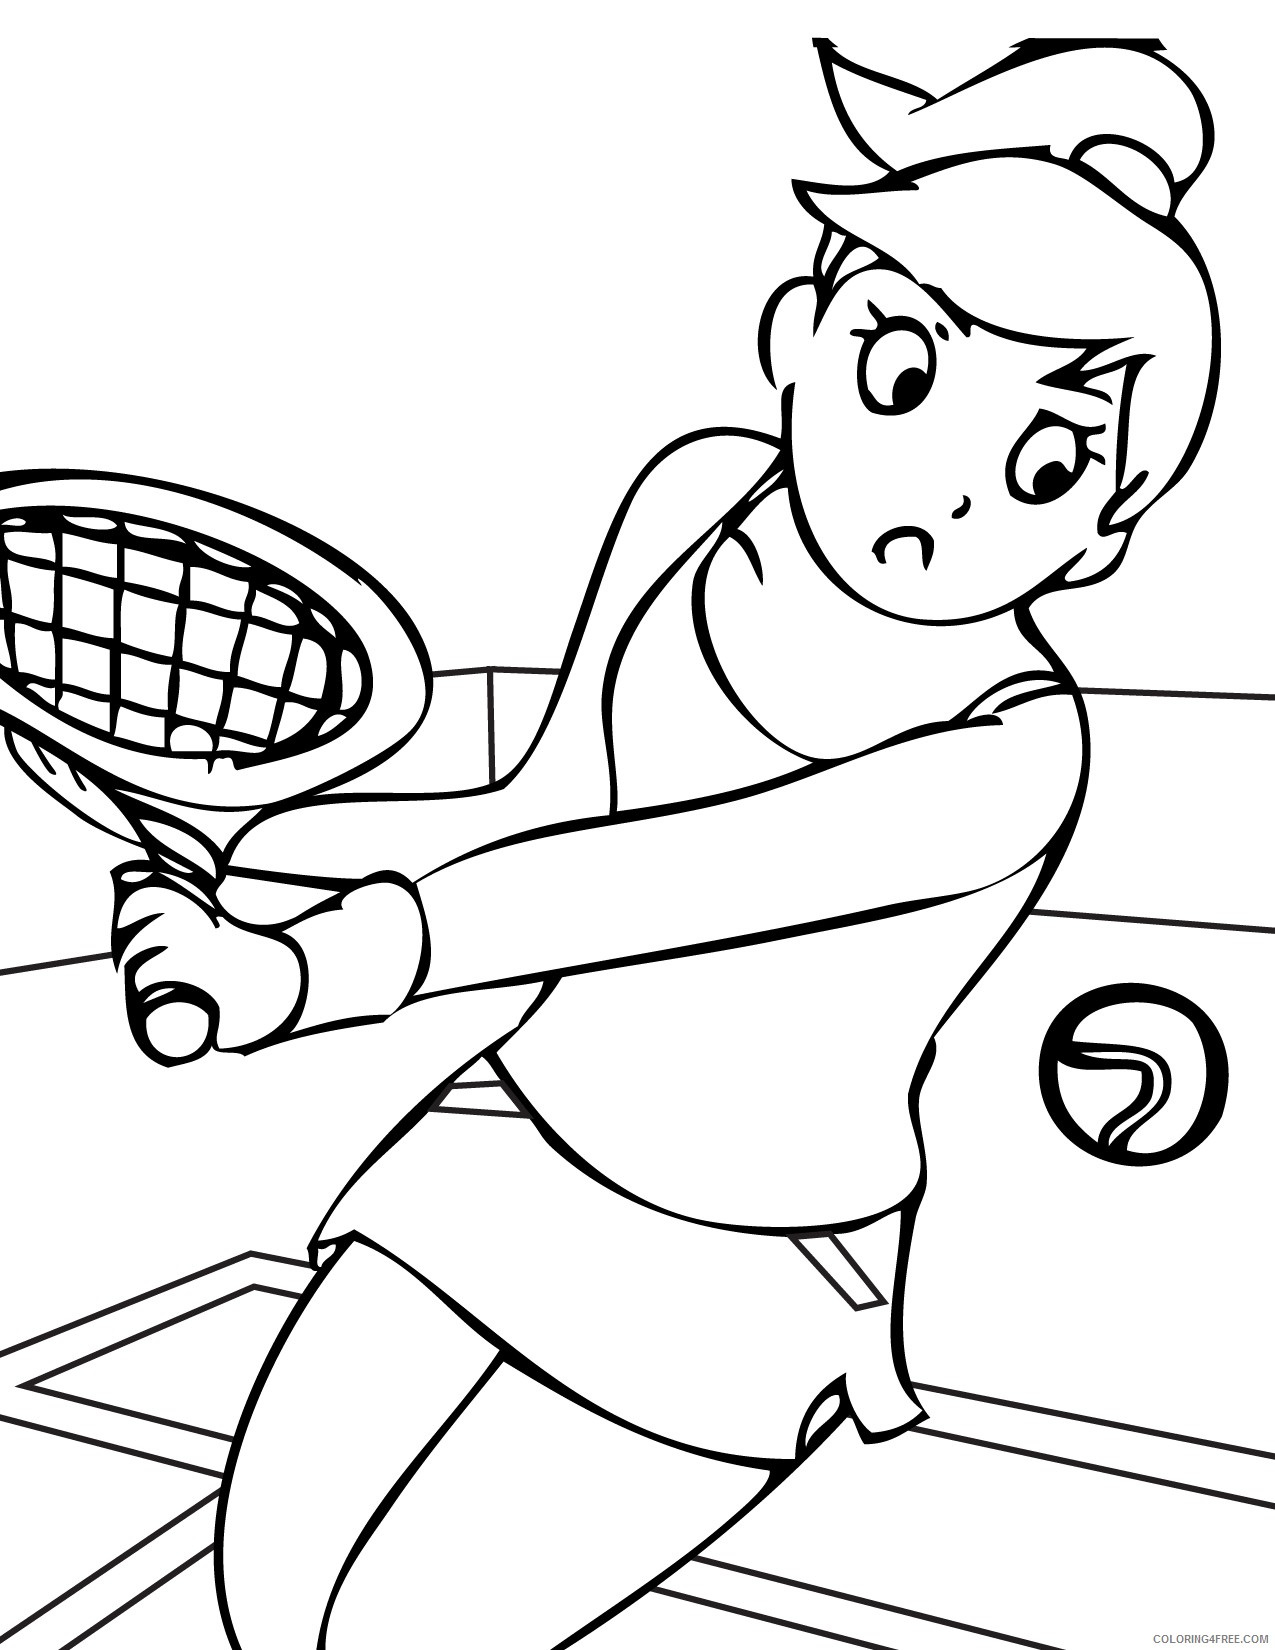 sports coloring pages tennis women Coloring4free